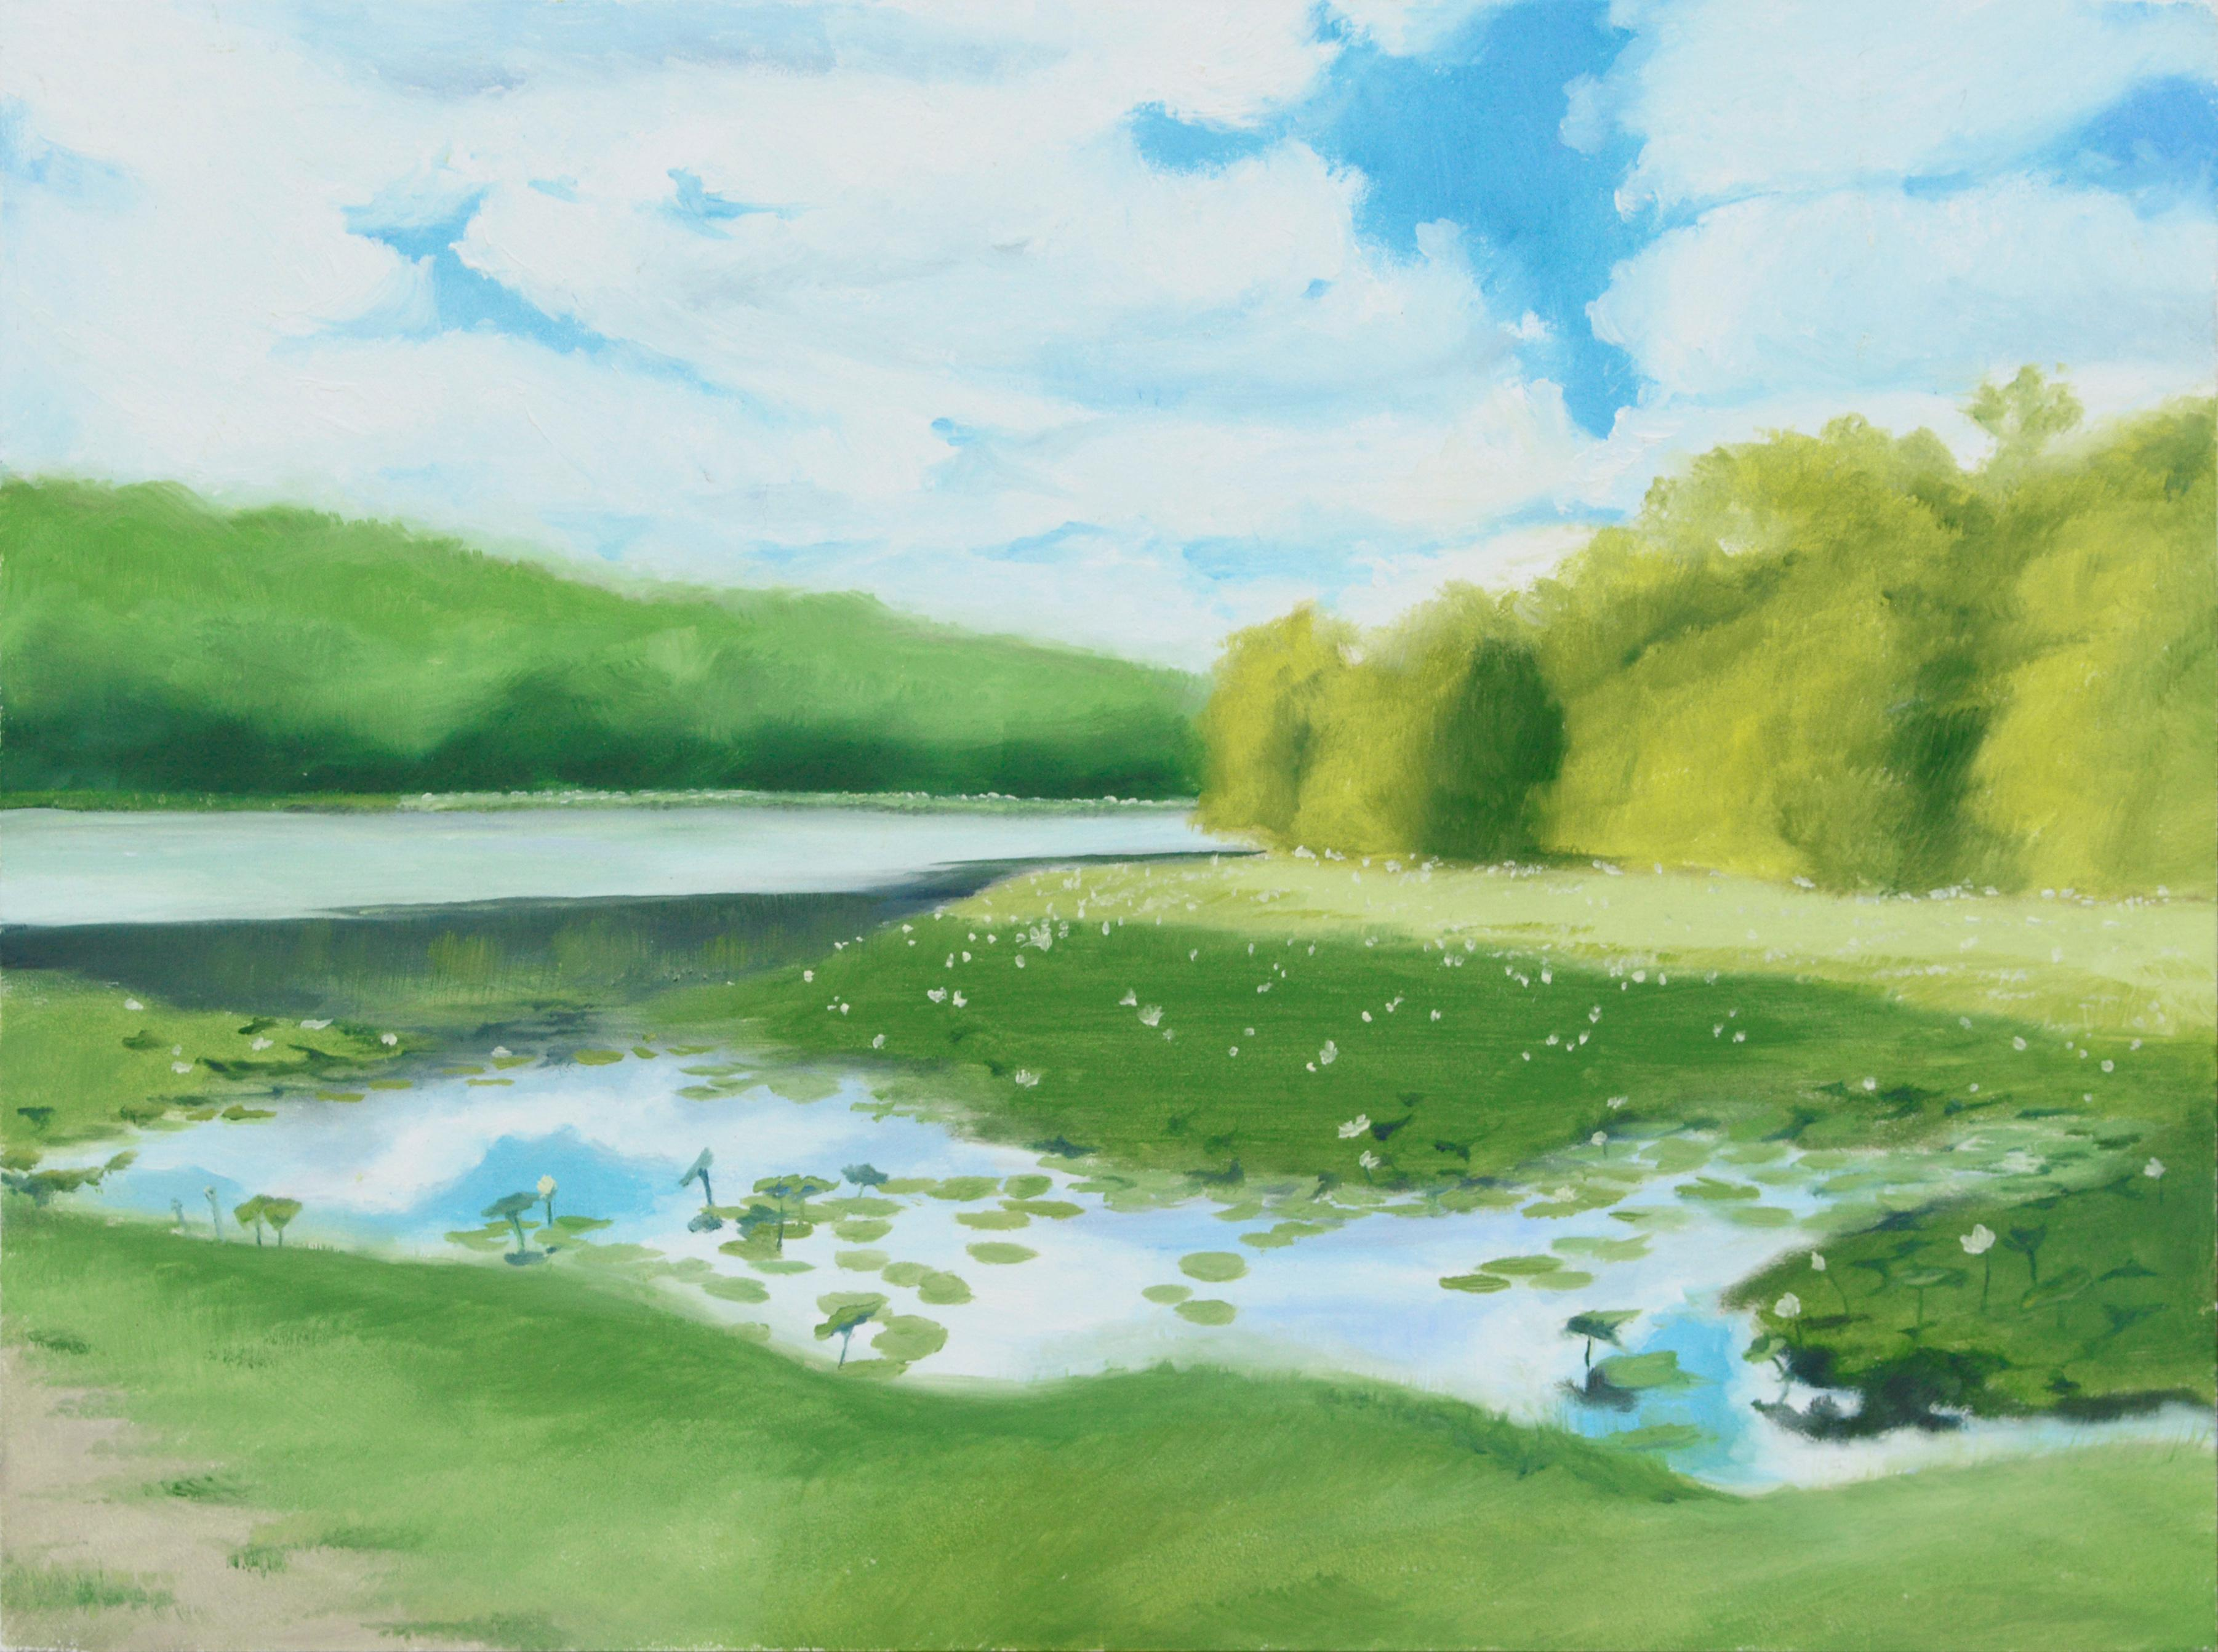 Lily Pond at the Edge of the Forest - Landscape